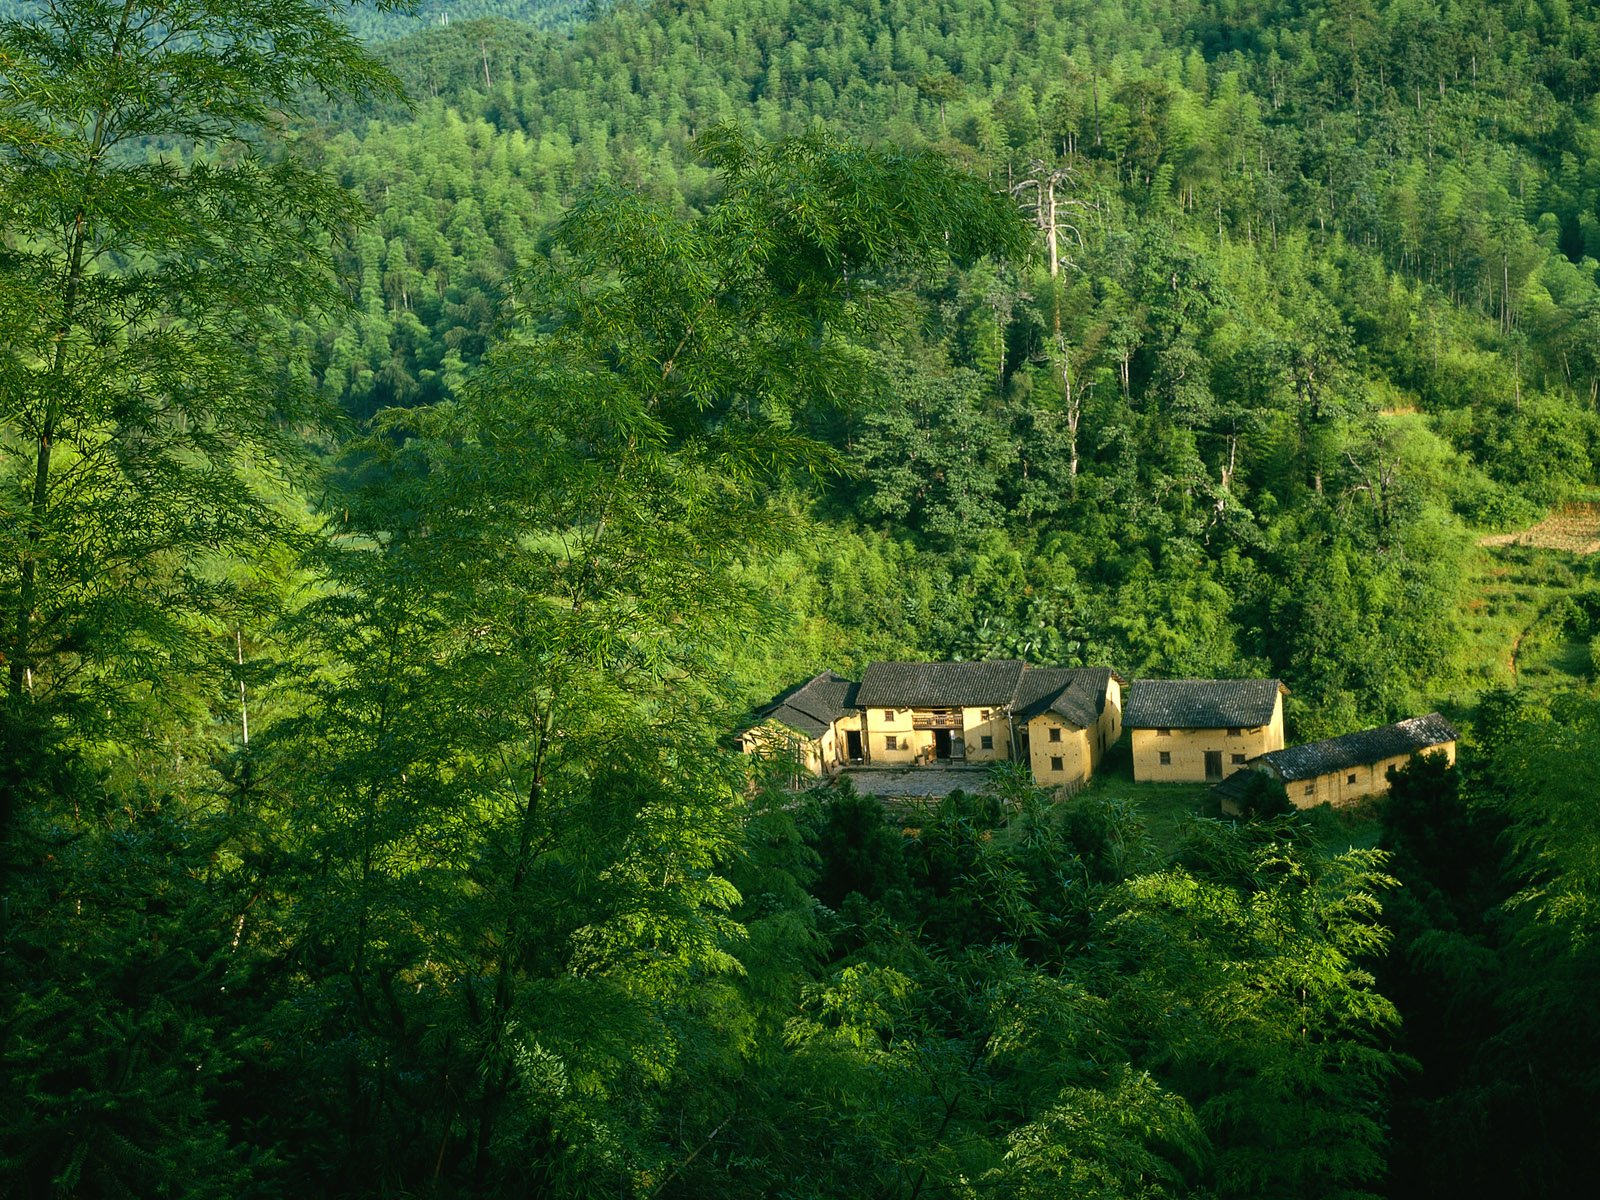 Man Made - House  Tree Green Forest Wallpaper